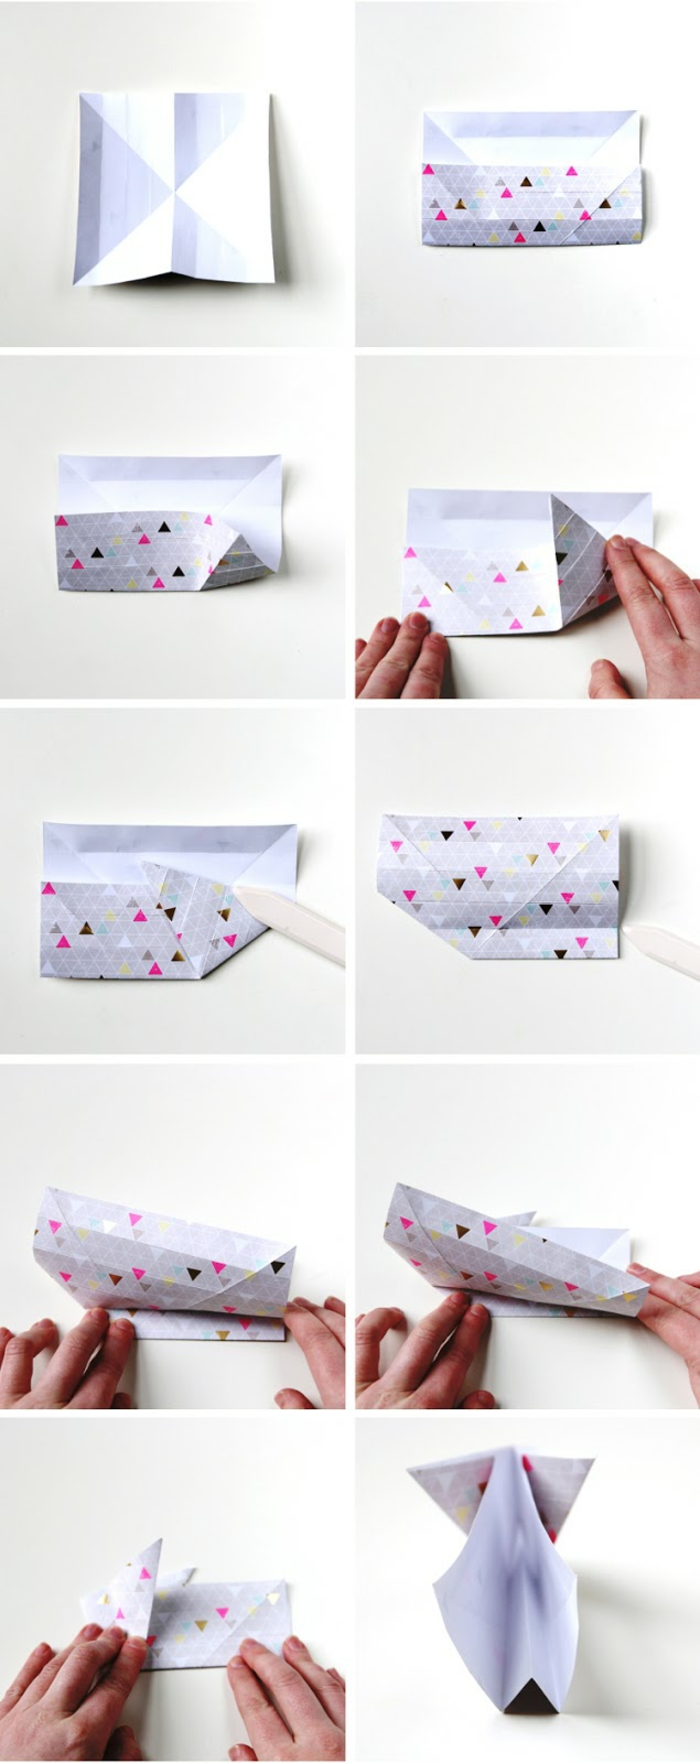 l'art de pliage papier, comment faire un lapin panier, tuto facile avec instructions